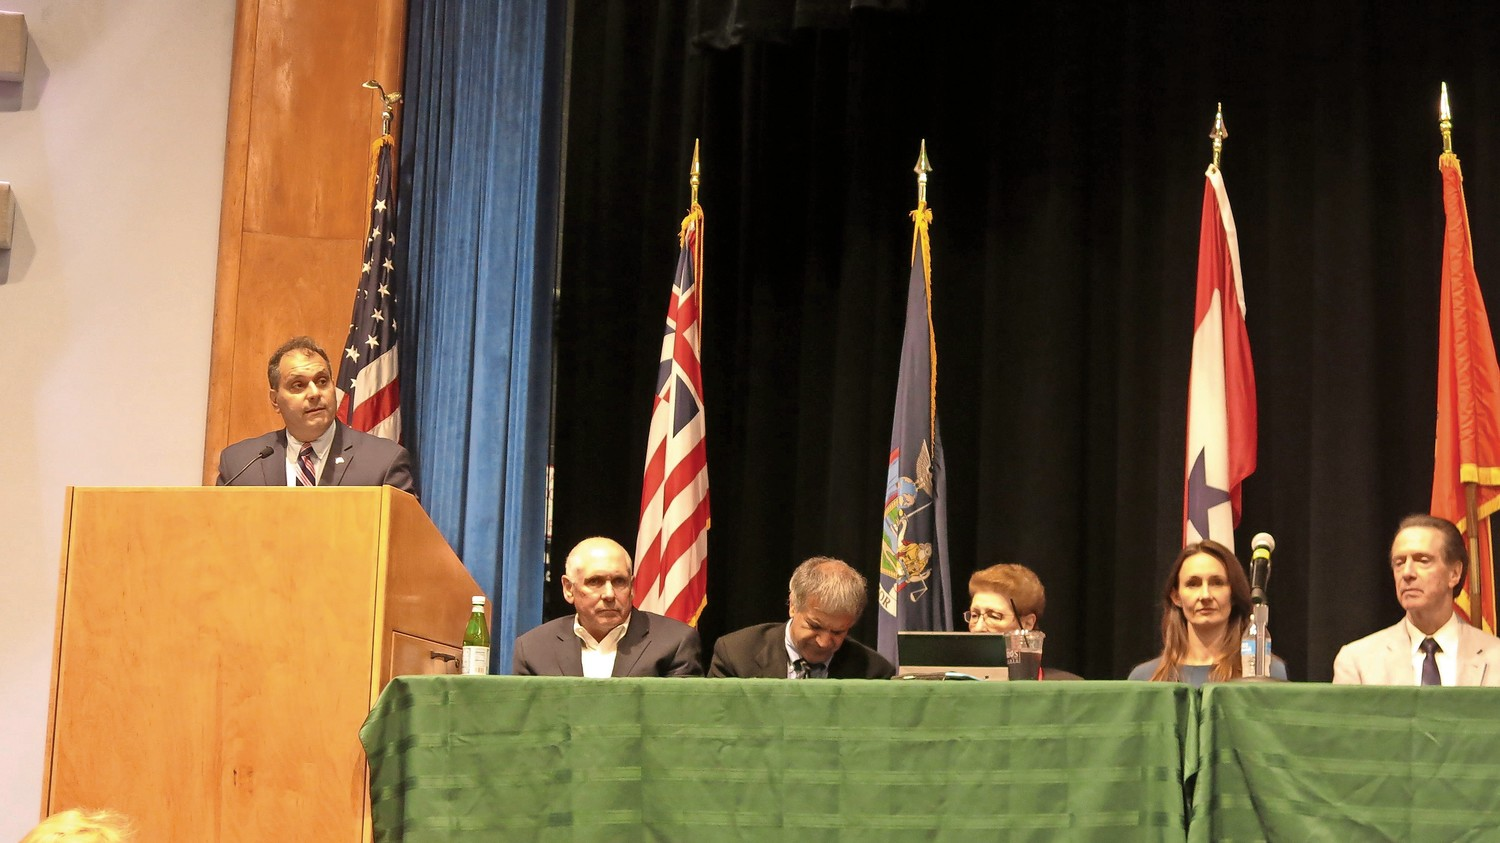 Oyster Bay Town Supervisor Joseph Saladino, far left, with members from the Village of Bayville Anti-Tunnel Committee — from left, John Taylor, Joe Russo, Rena Bologna, Jen Jones and George Jehn — at a meeting at Jericho High School on Monday, where they discussed Gov. Andrew Cuomo's tunnel.